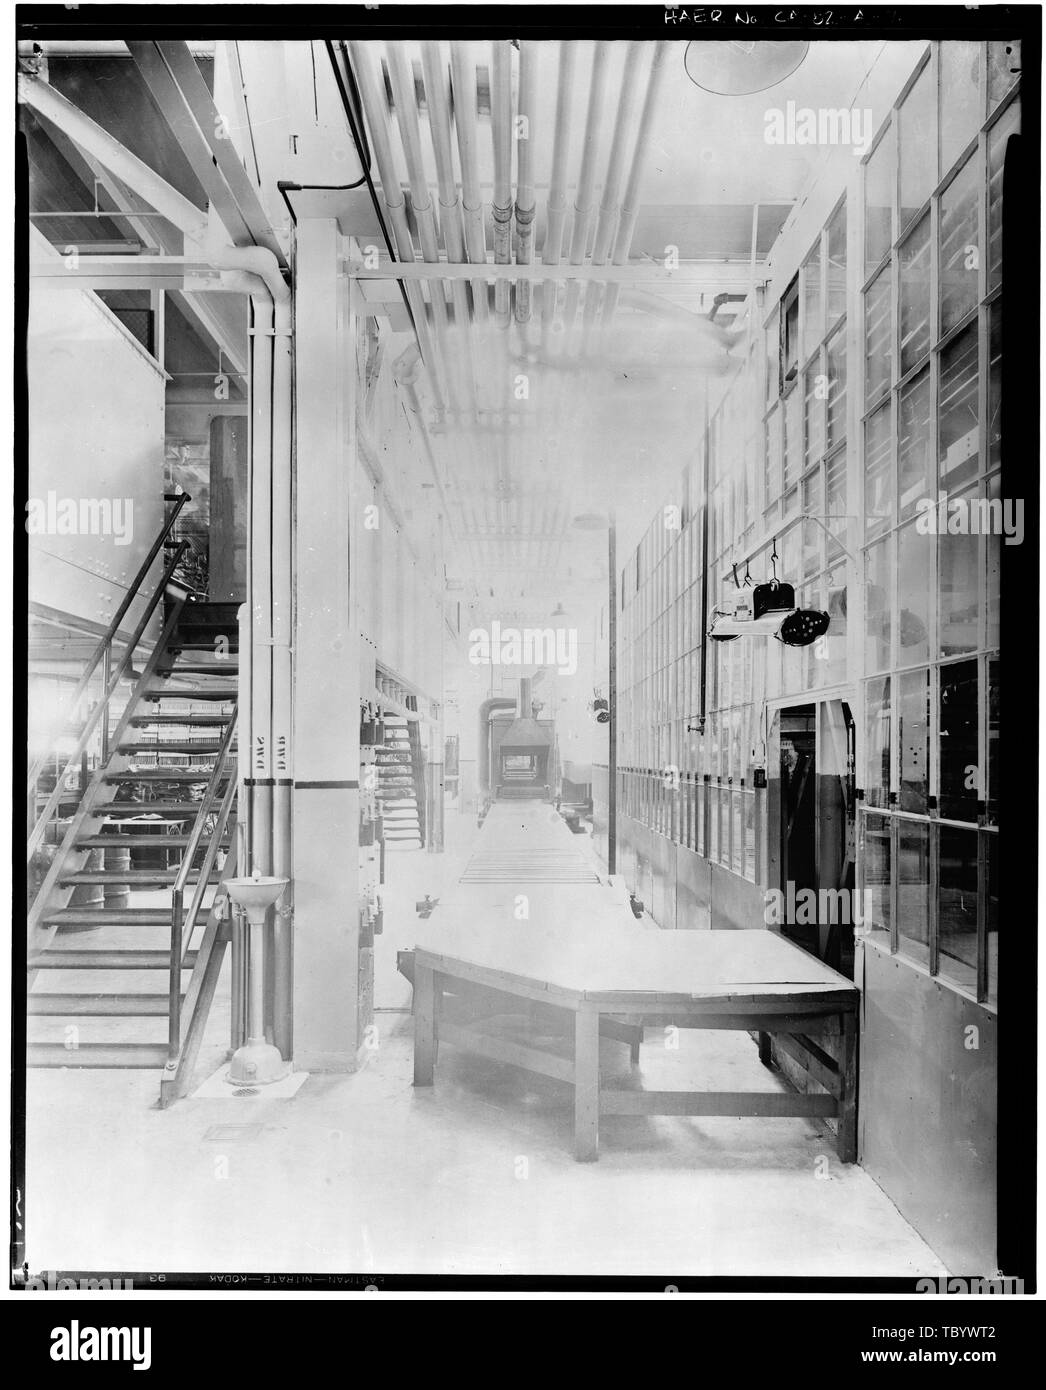 Neg. Nr. F 58, Apr 13, 1930, Gebäude, INTERIORASSEMBLY BURNOFF, LADEN ENDE Emaille-ofen Ford Motor Company Long Beach Montagewerk, Assembly Building, 700 Henry Ford Avenue, Long Beach, Los Angeles County, CA Stockbild